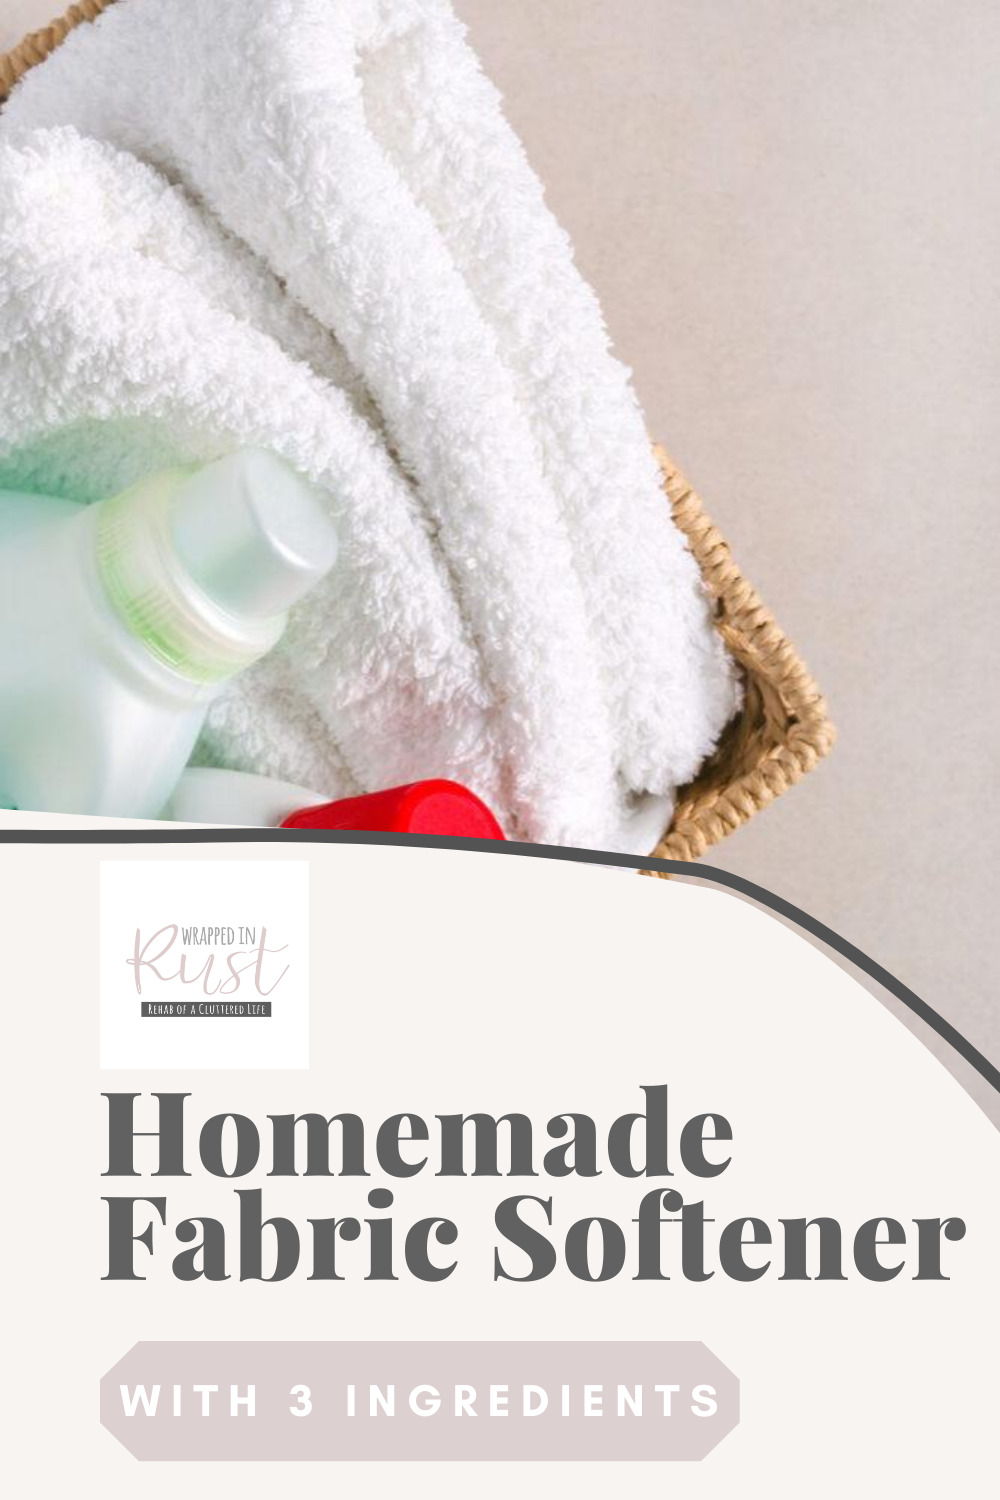 How to make homemade fabric softener that works. Make your money go farther without sacrificing the softness of your towels with homemade fabric softener. #wrappedinrustblog #homemadefabricsoftener